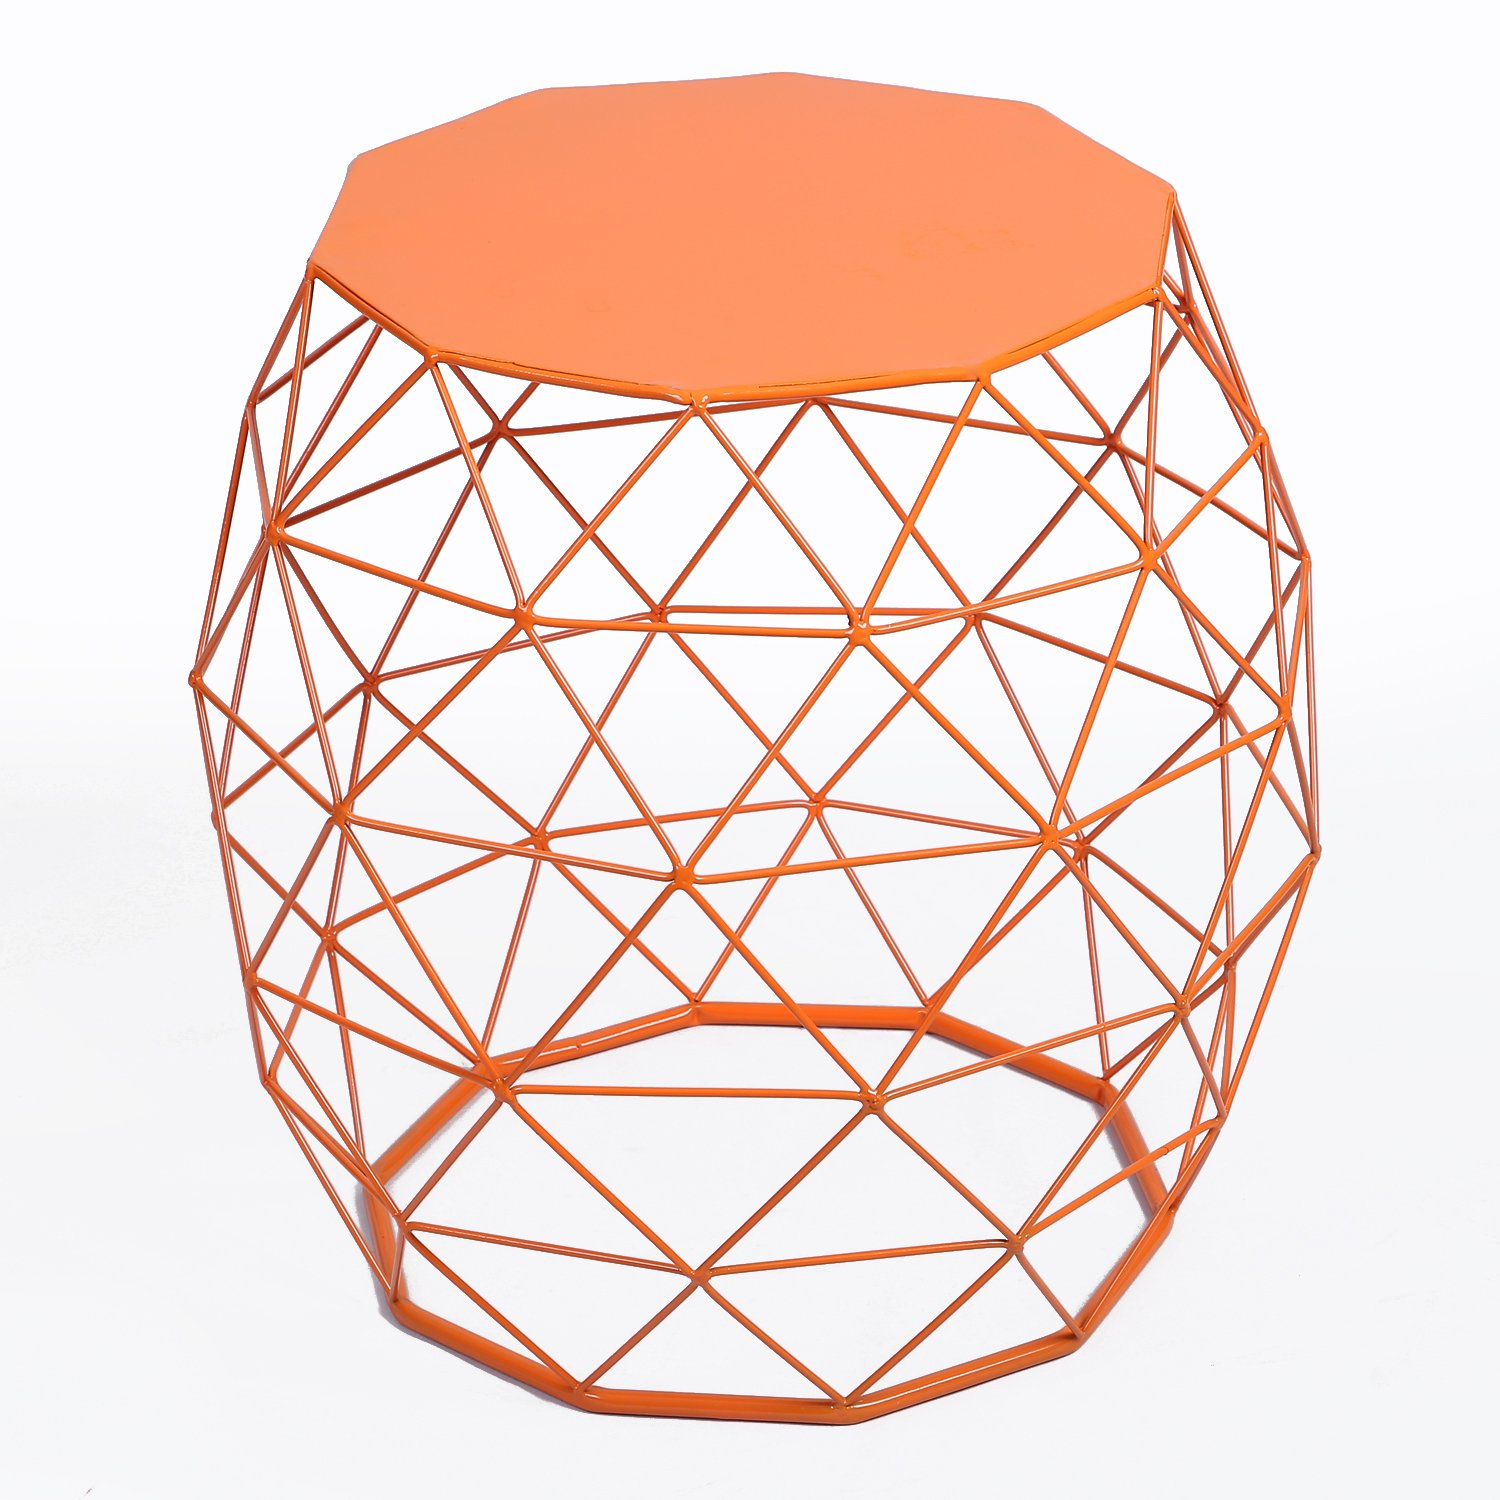 adeco home garden accents wire round iron metal stool accent table side plant stand chair hatched diamond pattern for indoor orange red kitchen white and brown end large antique